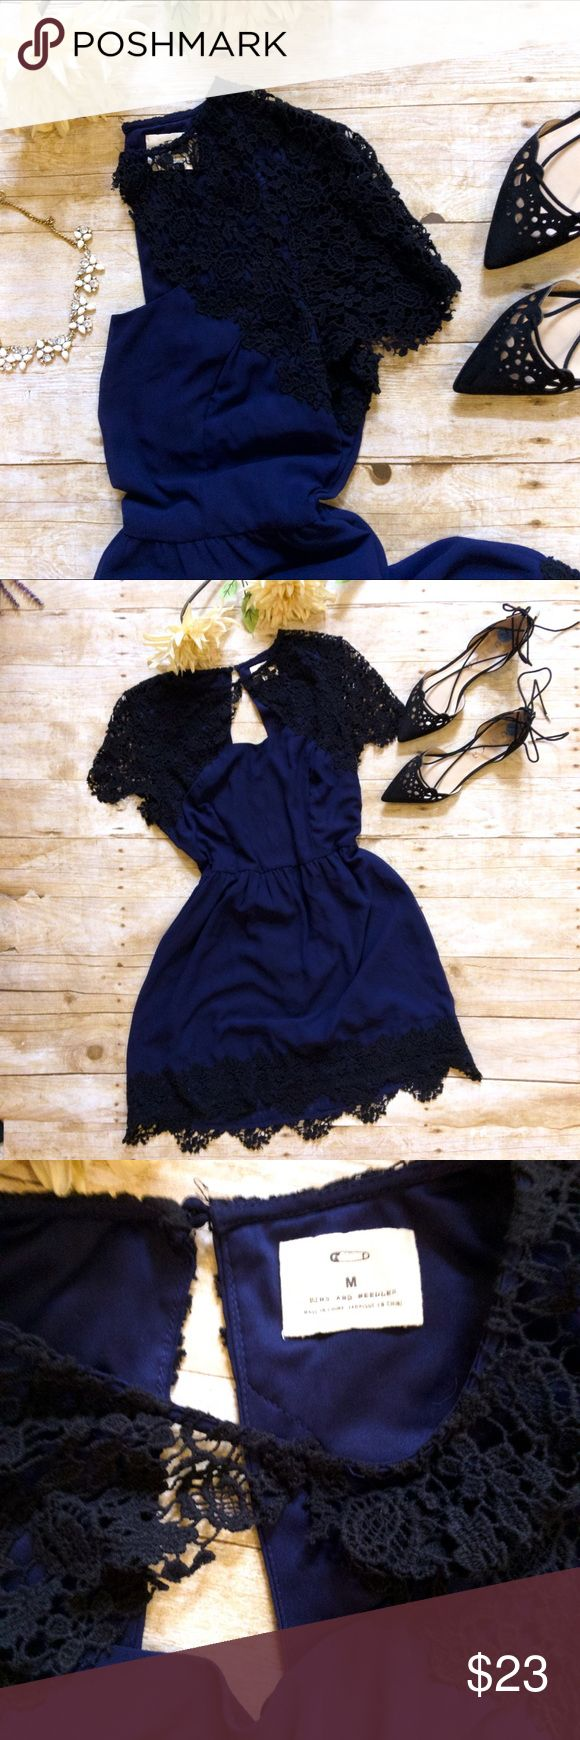 PINS & NEEDLES Crochet Navy Dress Gorgeous navy blue dress with beautiful black Crochet detailing at the sleeves and hem! Cut out back! Fully lined! Perfect for a wedding, party, night out! Perfect summer dress! Urban Outfitters Dresses